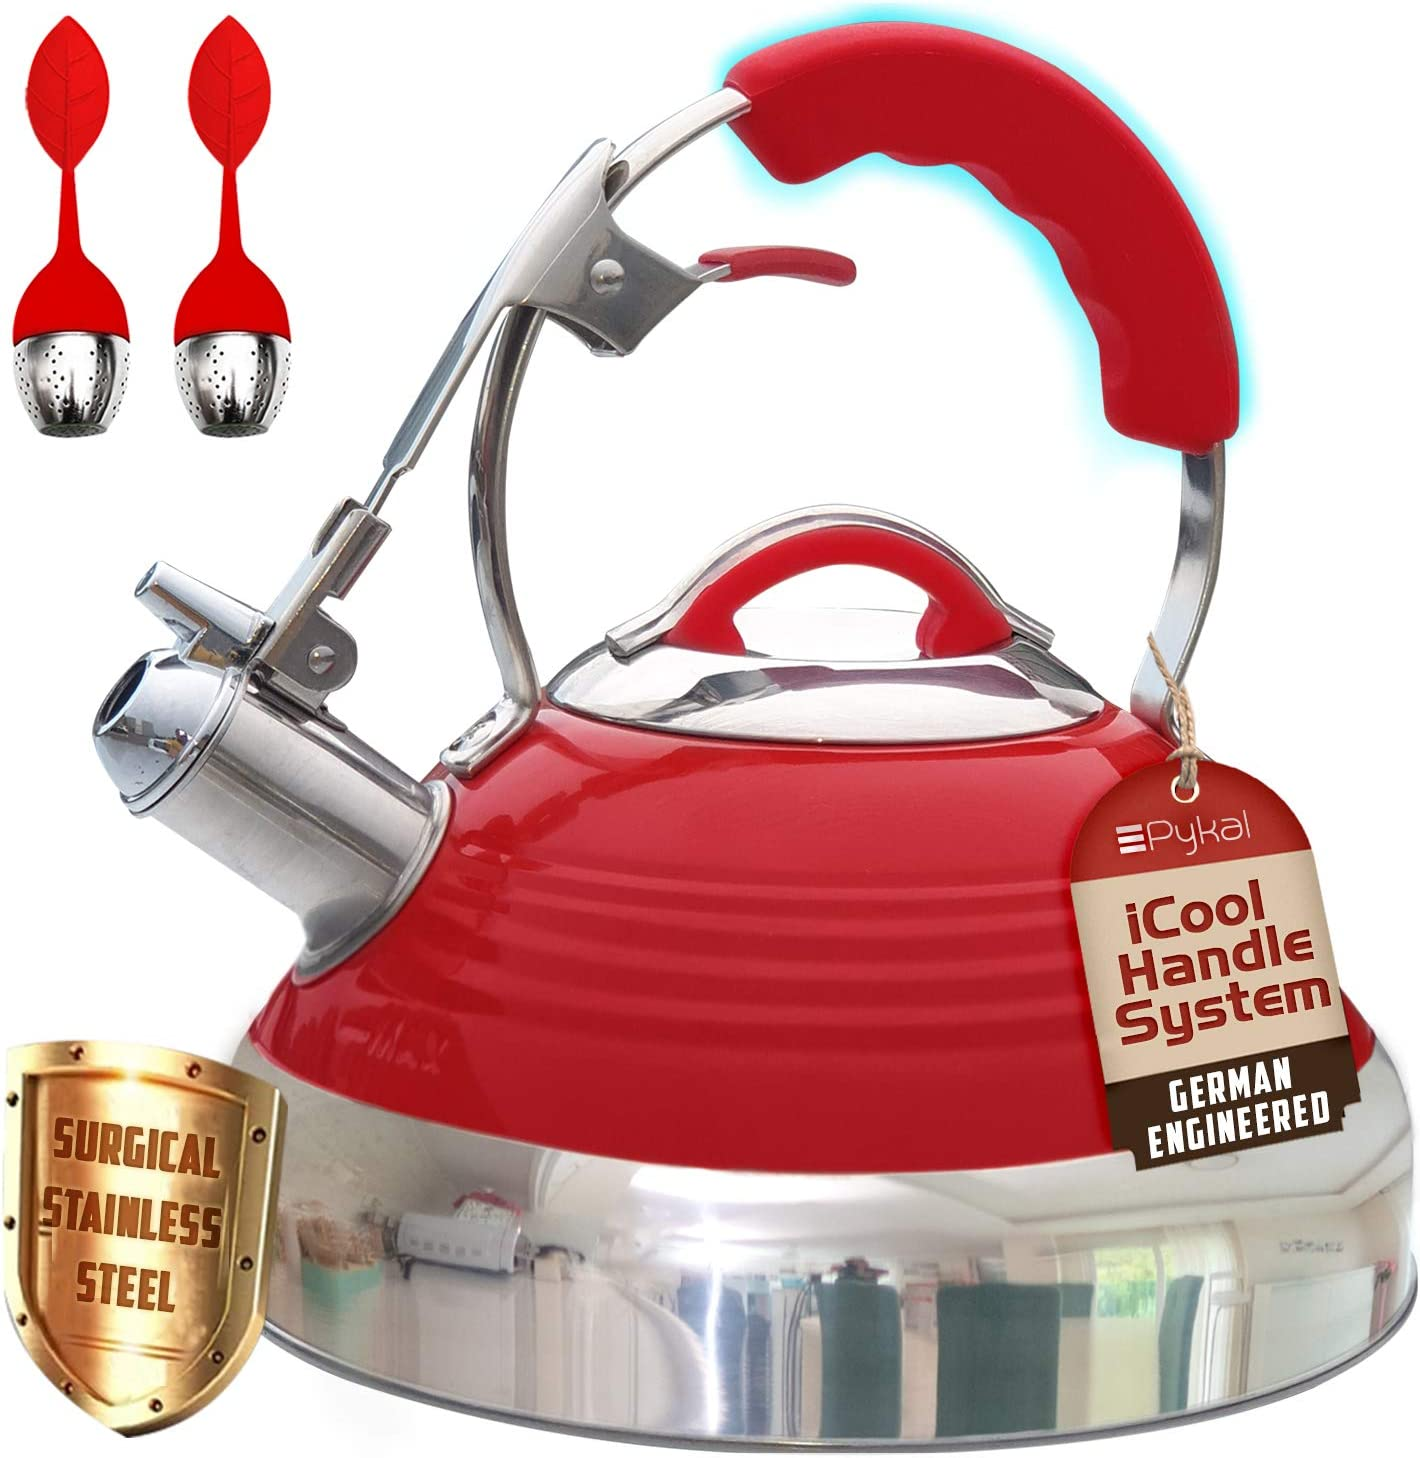 Whistling Tea Kettle Red Hotness with iCool-Handle Technology and 2 Free Infusers for Loose Leaf Tea | Surgical Stainless Steel, Compatible on all Stovetops